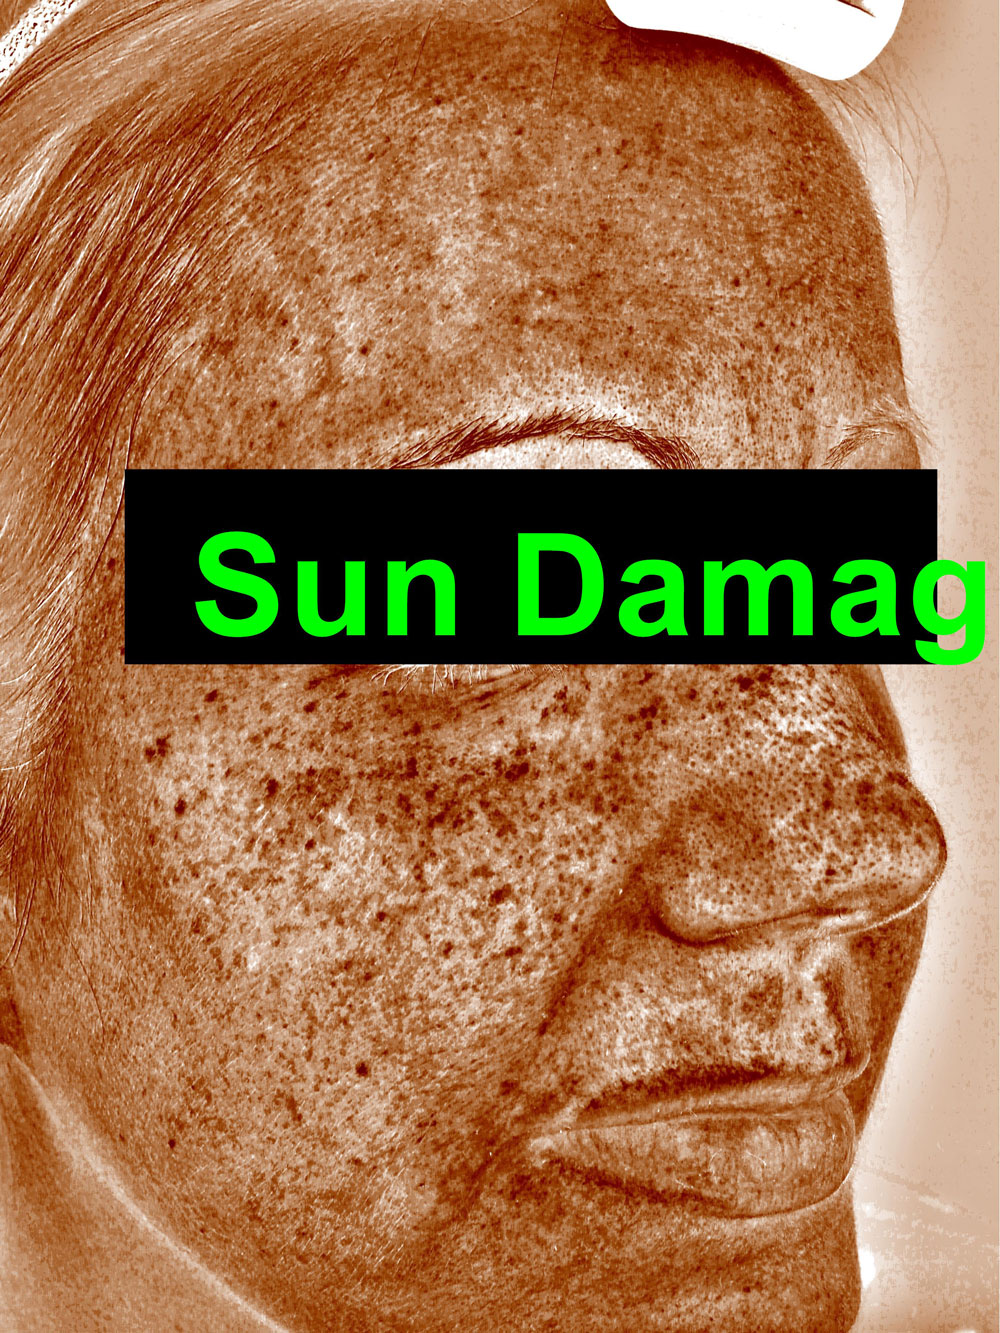 Sun damage before from IPL treatment before and after procedure provided by Dr. Scott Hernberg of Tomorrow's Wellness Center, NJ's premier med spa.